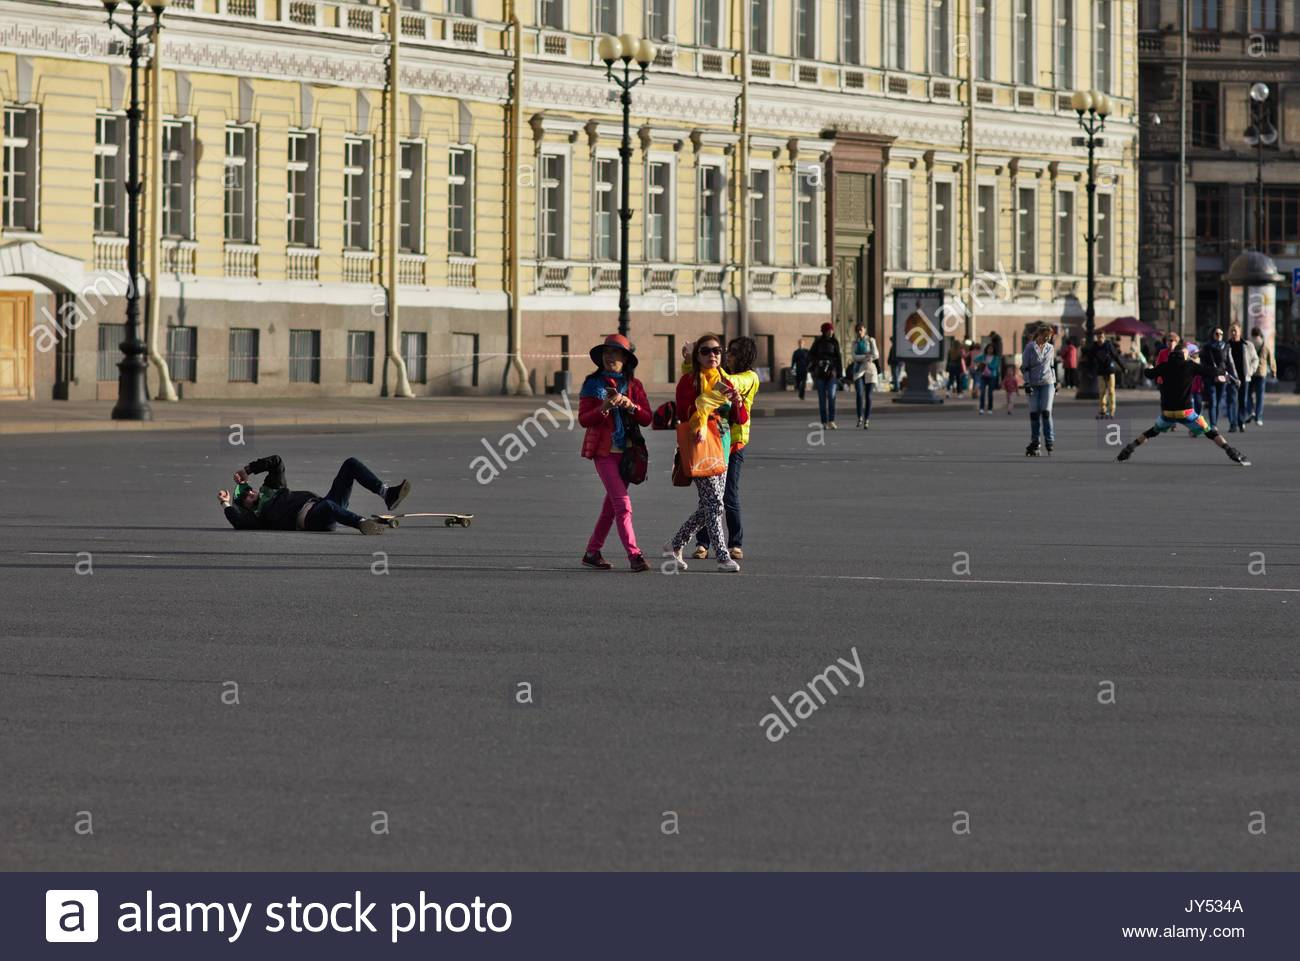 Fallen skater and tourists on palace square Stock Photo